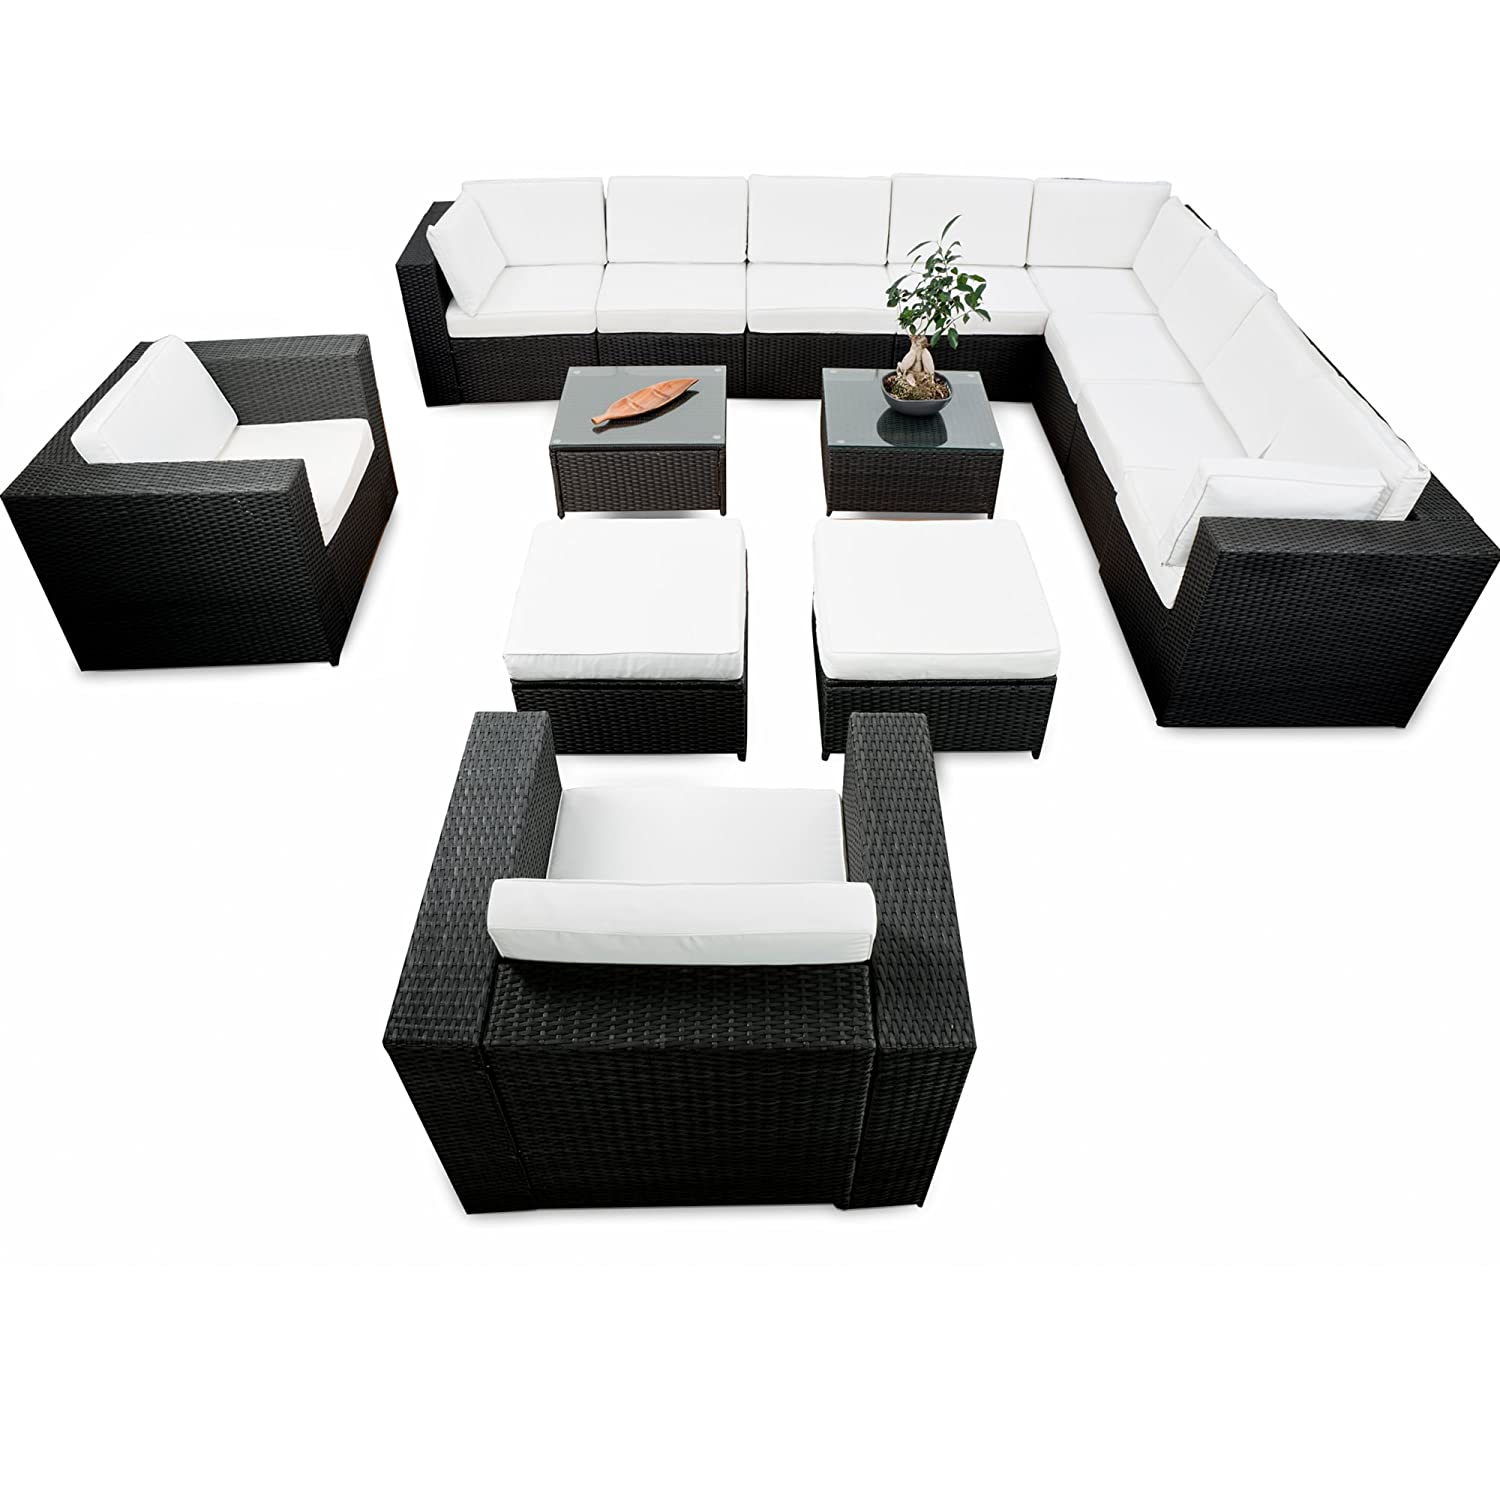 erweiterbares 41tlg xxxl lounge set polyrattan schwarz sitzgruppe garnitur gartenm bel. Black Bedroom Furniture Sets. Home Design Ideas